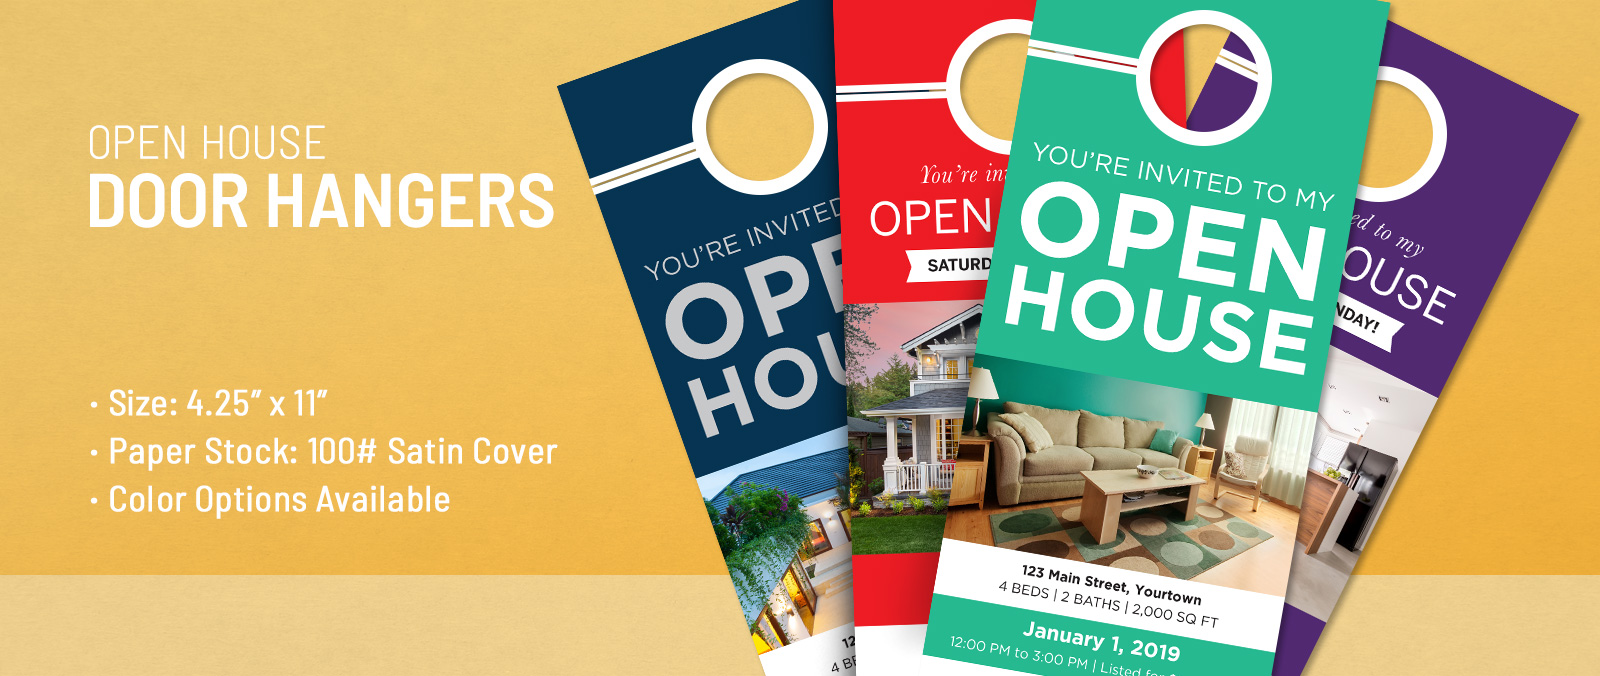 Open House Door Hangers